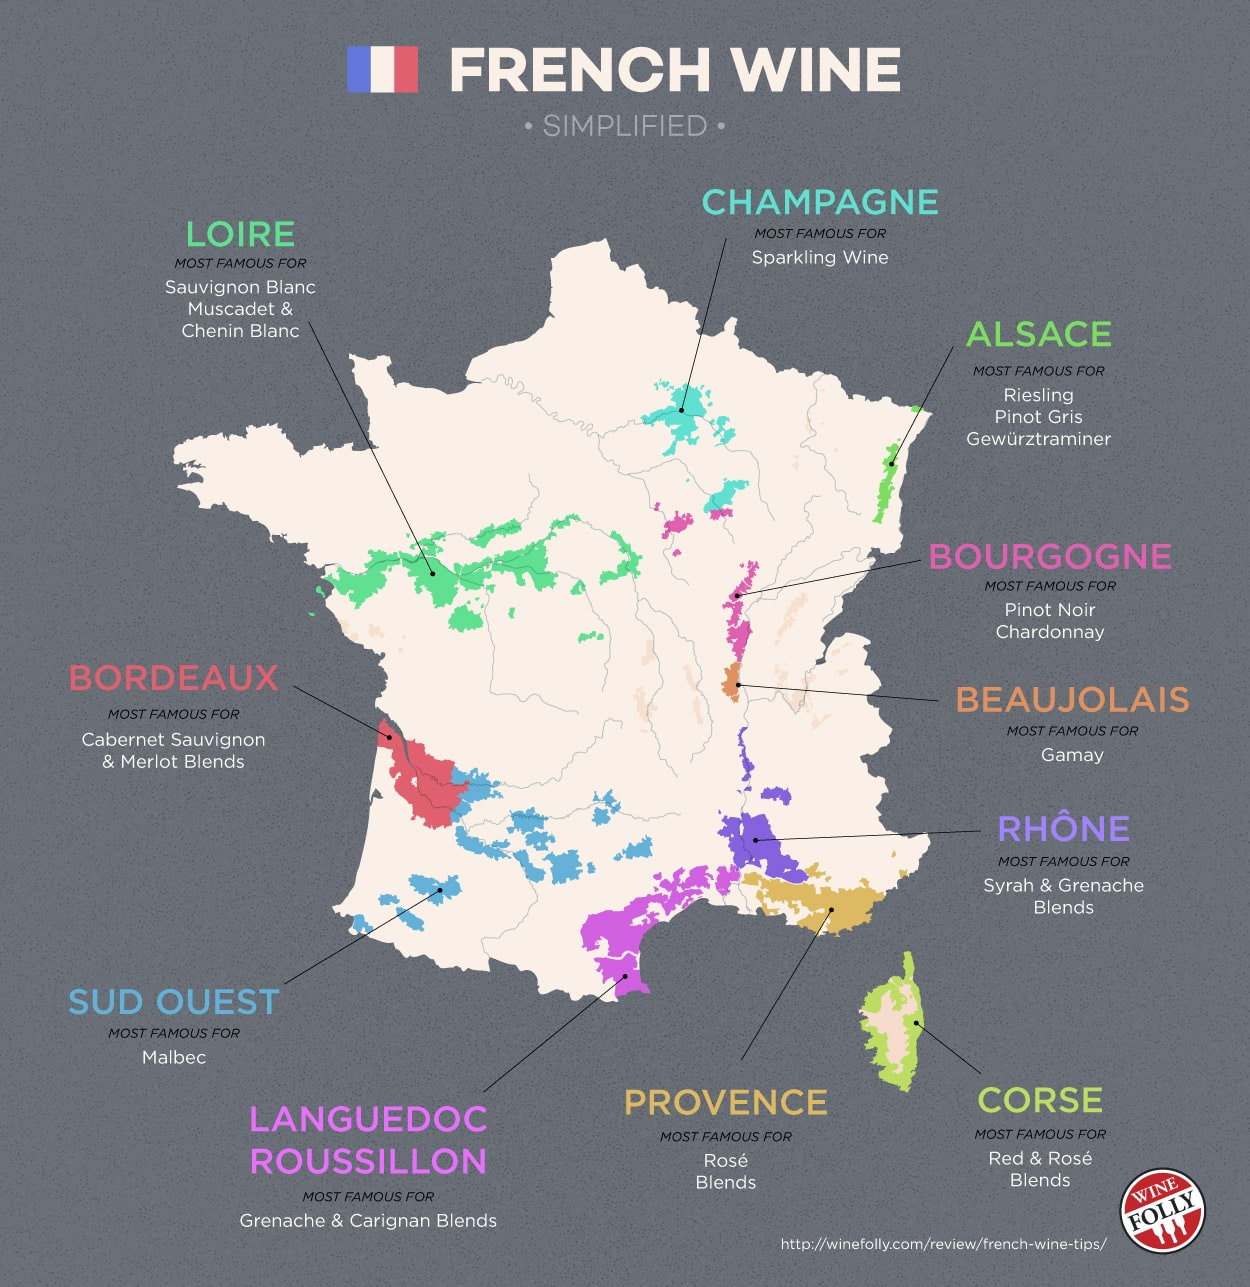 Map of French wines regions, highlighting areas like Champagne, Bourgogne, Beaujolais, Bordeaux, etc.